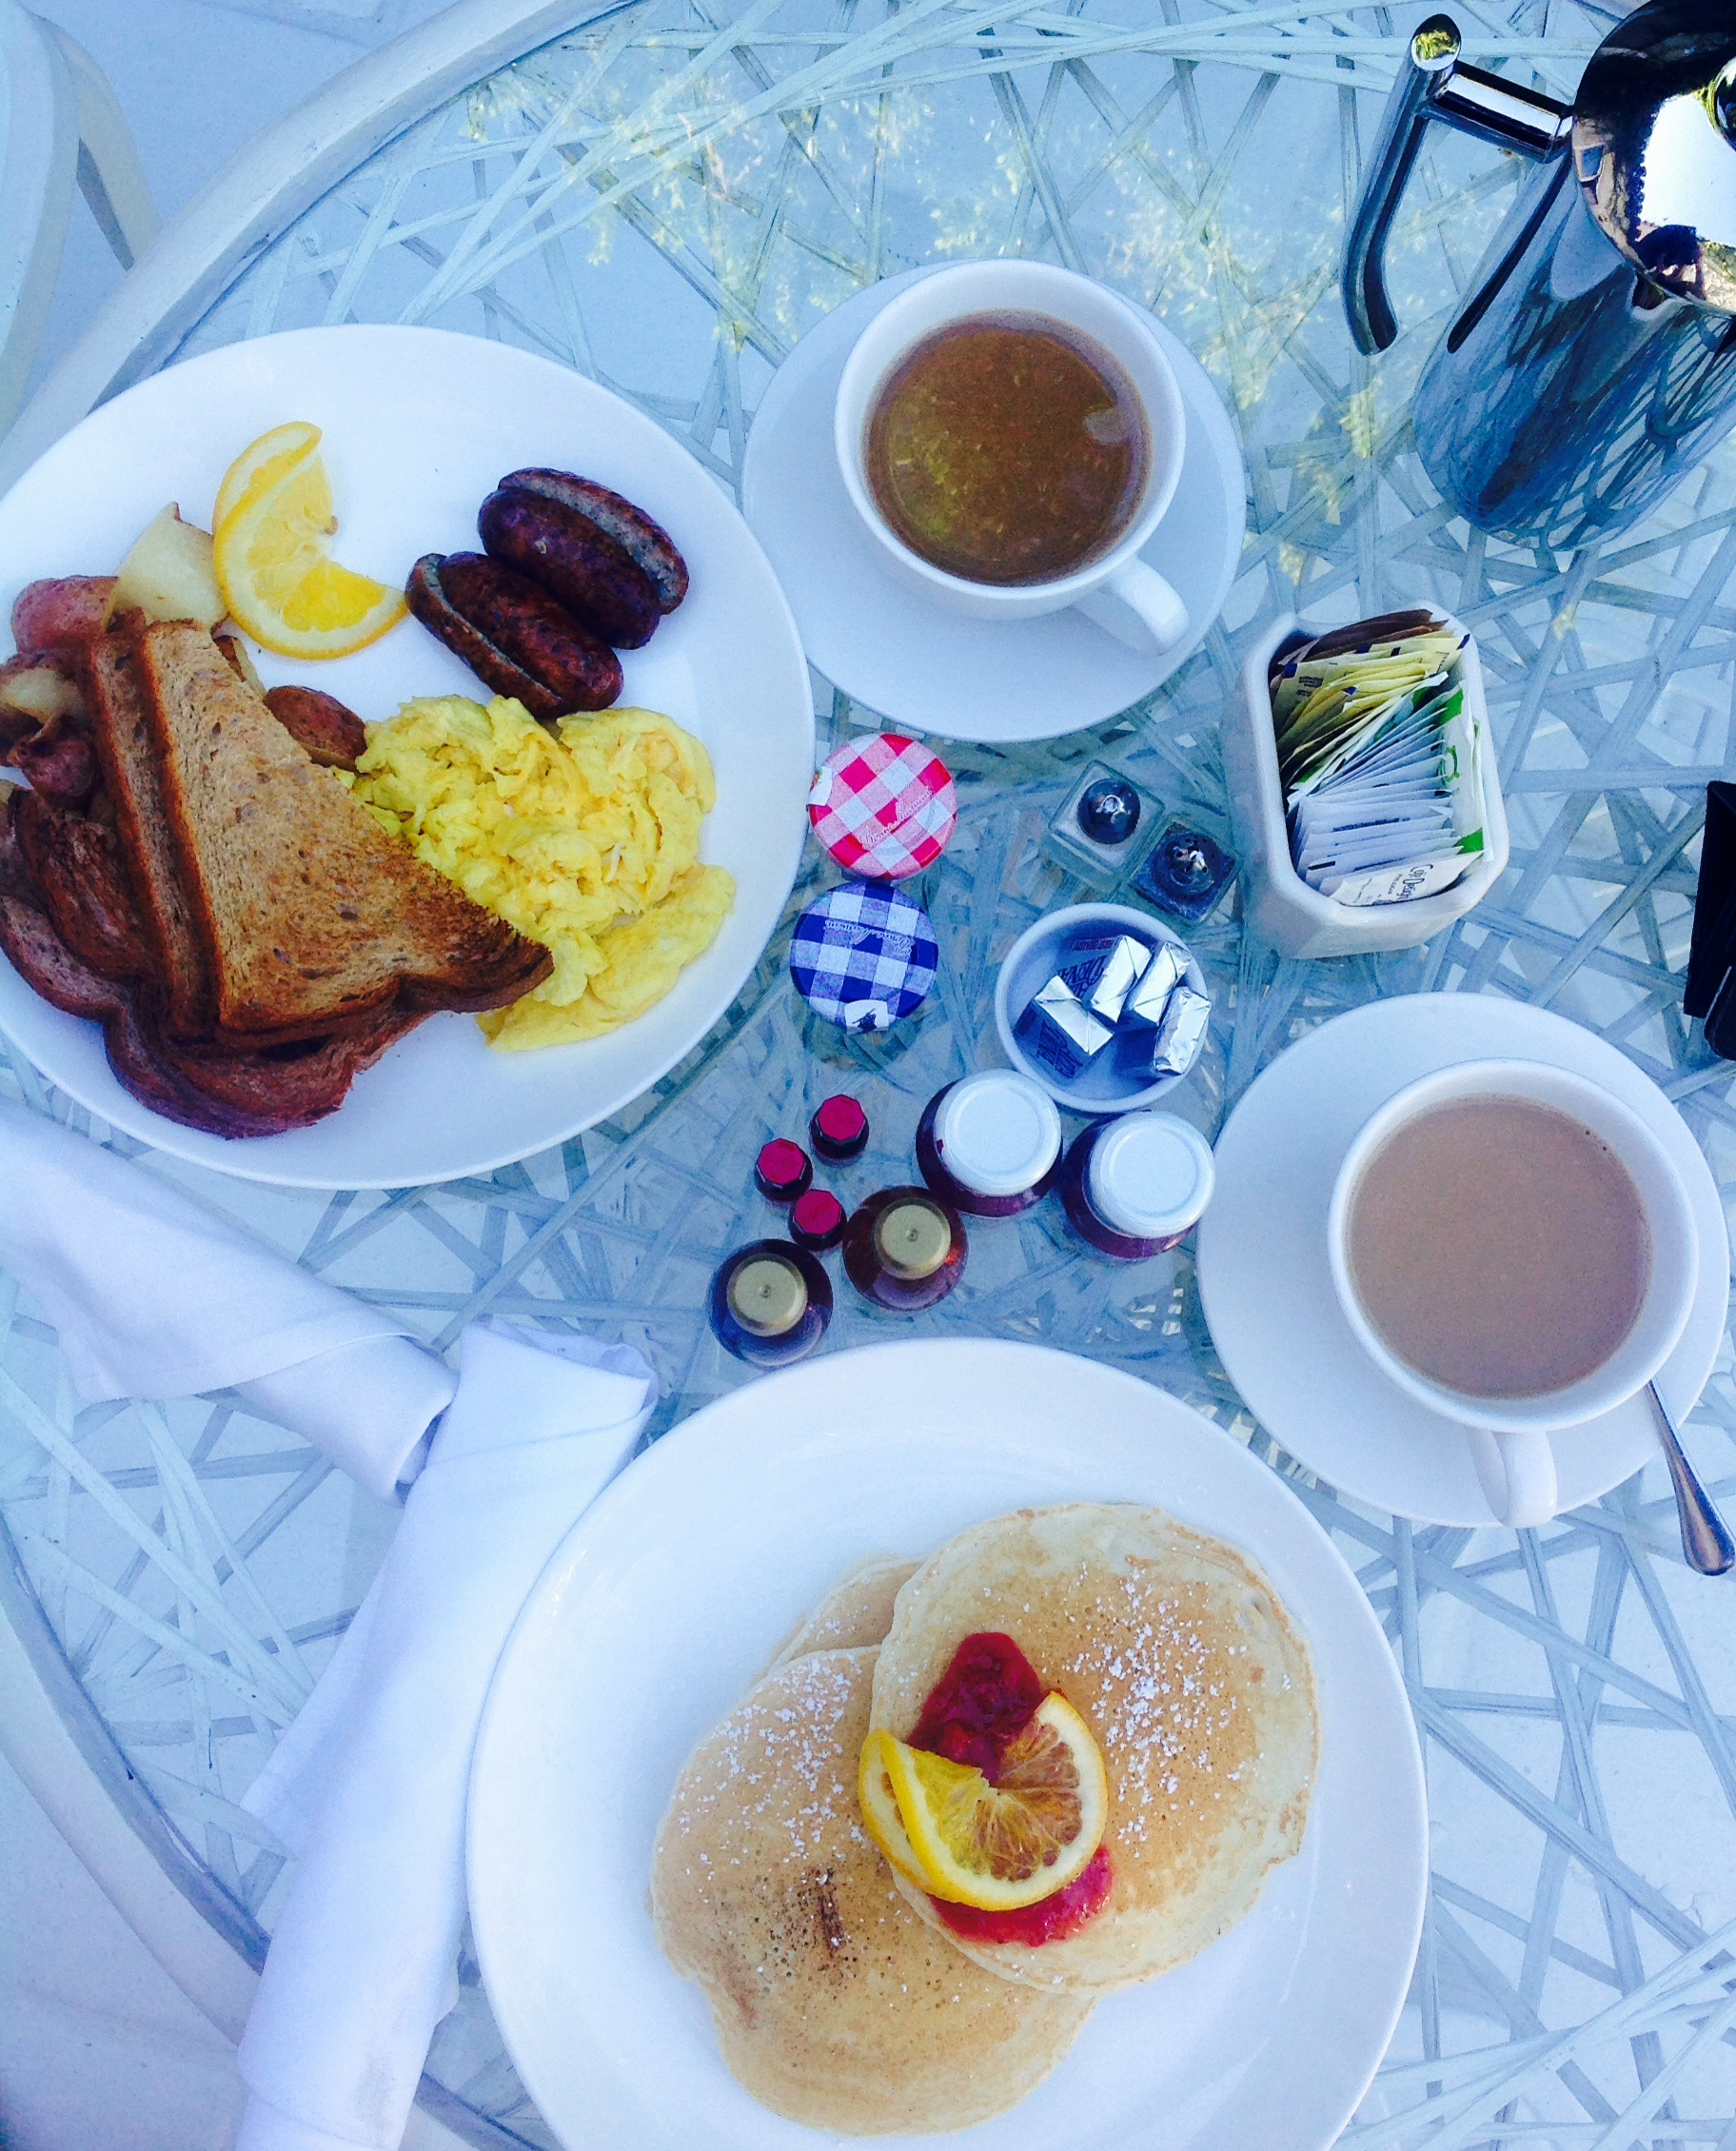 Our delicious breakfast on the patio.